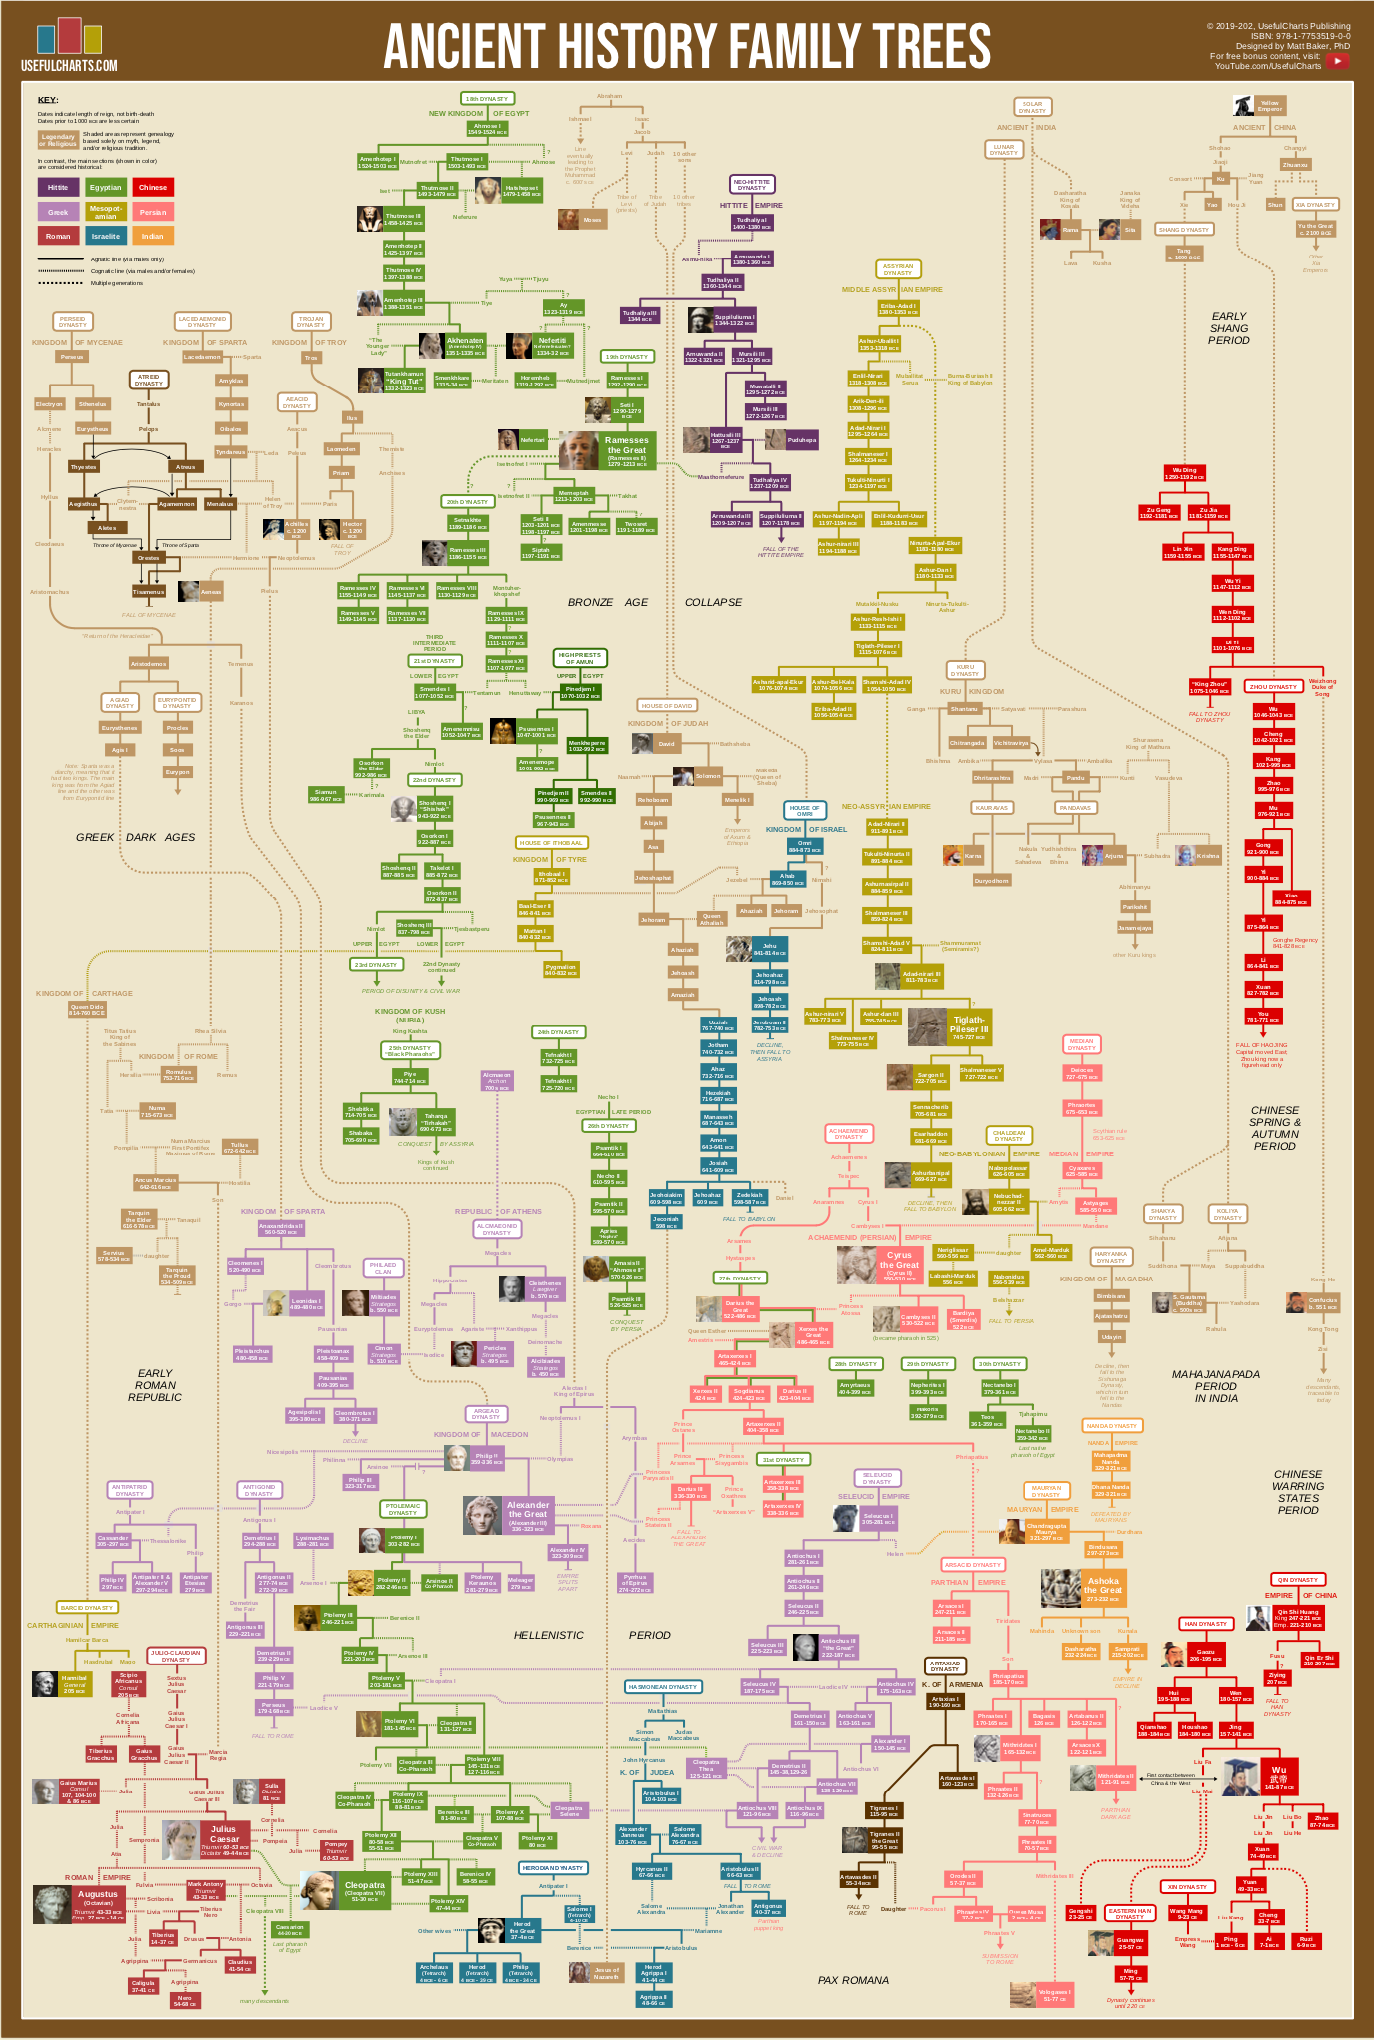 Ancient History Family Trees